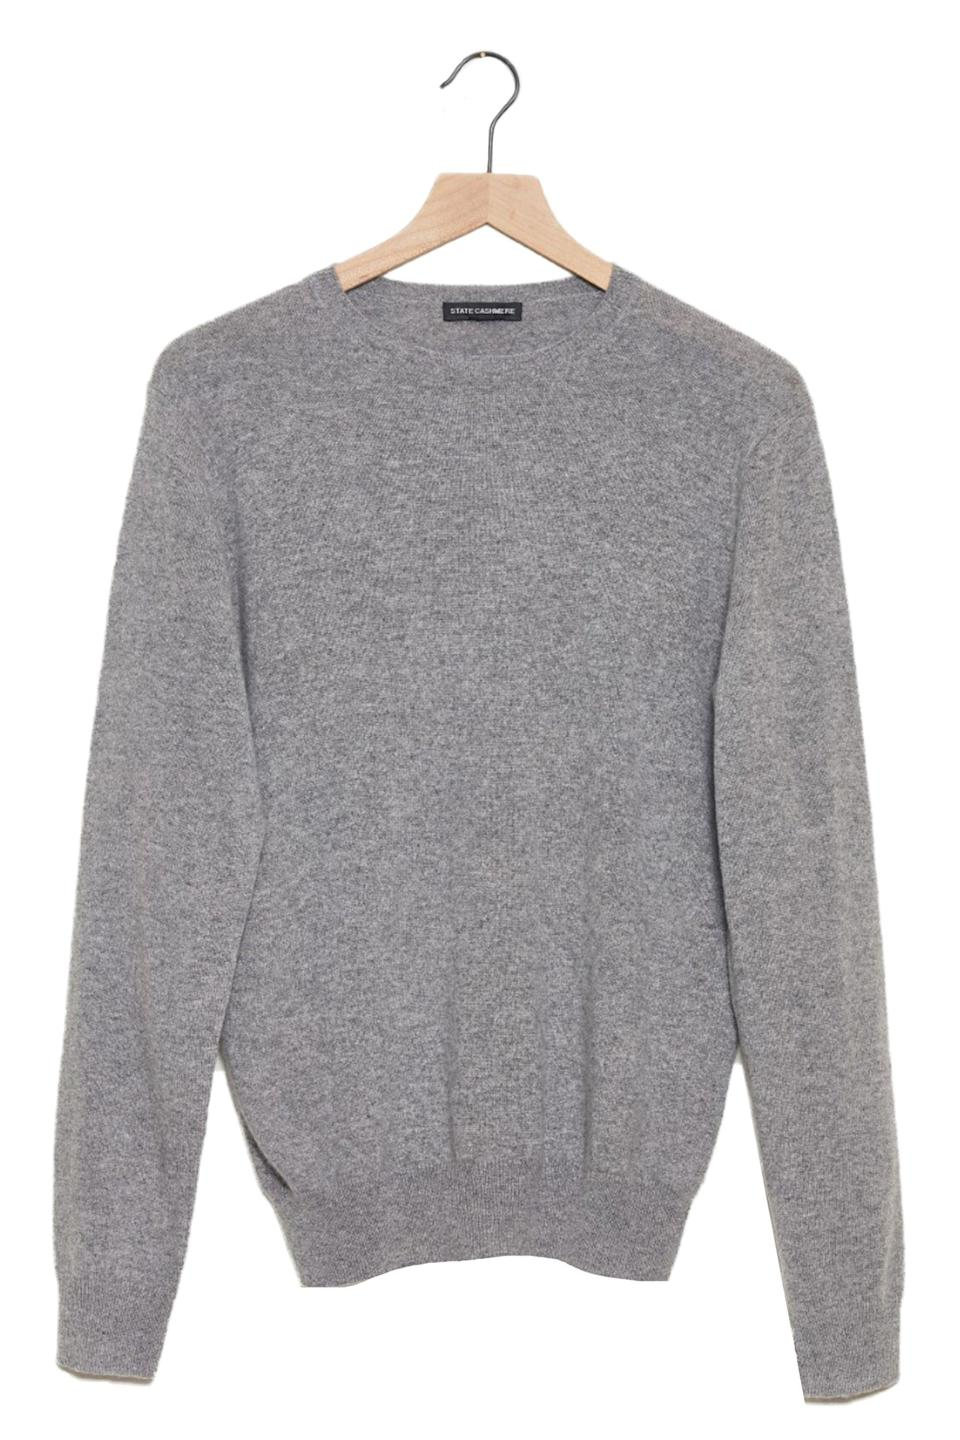 """<p><strong>State Cashmere</strong></p><p>amazon.com</p><p><strong>$140.00</strong></p><p><a href=""""https://www.amazon.com/dp/B074CTX7V2?tag=syn-yahoo-20&ascsubtag=%5Bartid%7C10063.g.34824549%5Bsrc%7Cyahoo-us"""" rel=""""nofollow noopener"""" target=""""_blank"""" data-ylk=""""slk:Shop Now"""" class=""""link rapid-noclick-resp"""">Shop Now</a></p><p>Editor-loved brand <a href=""""https://www.amazon.com/stores/State+Cashmere/page/775AA30A-0943-43CB-A50B-19922DD17EF2?ref_=ast_bln"""" rel=""""nofollow noopener"""" target=""""_blank"""" data-ylk=""""slk:State Cashmere"""" class=""""link rapid-noclick-resp"""">State Cashmere</a> makes 100% pure hypoallergenic cashmere for a fraction of what I see a lot of other brands charging. Here, a failsafe crewneck he'll have for years to come.</p>"""